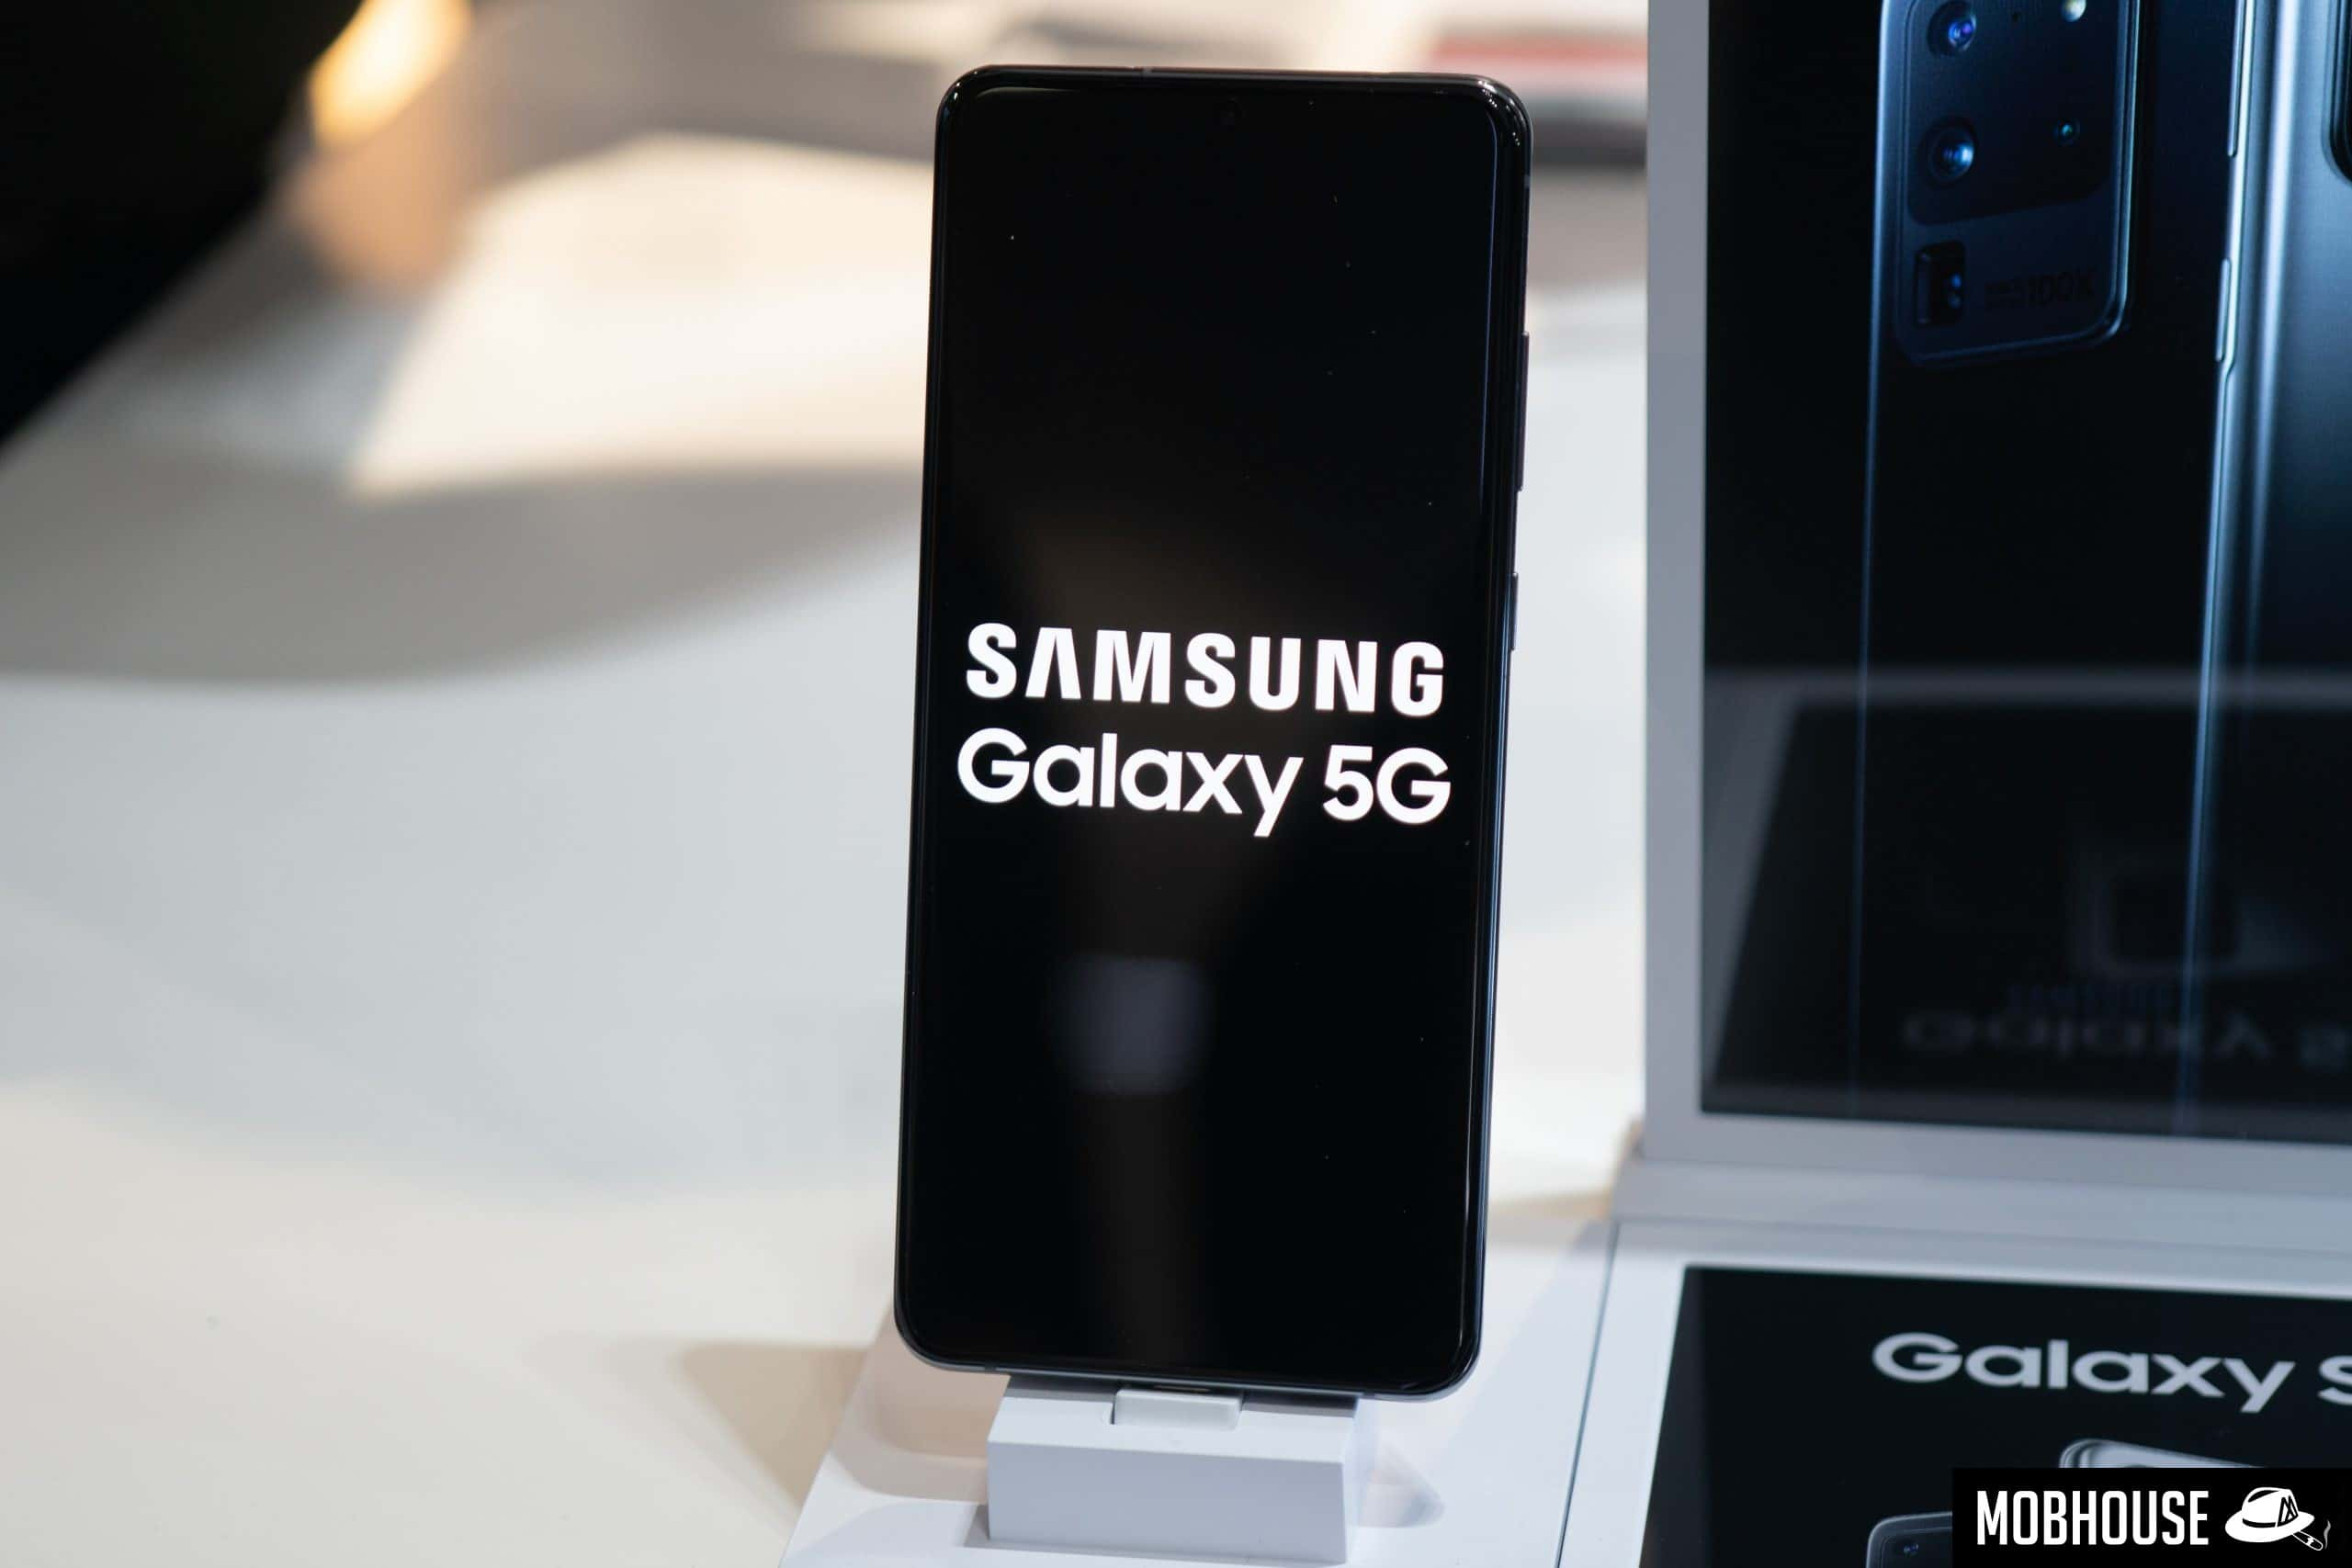 Galaxy S20 Ultra (MOBHouse Productions)